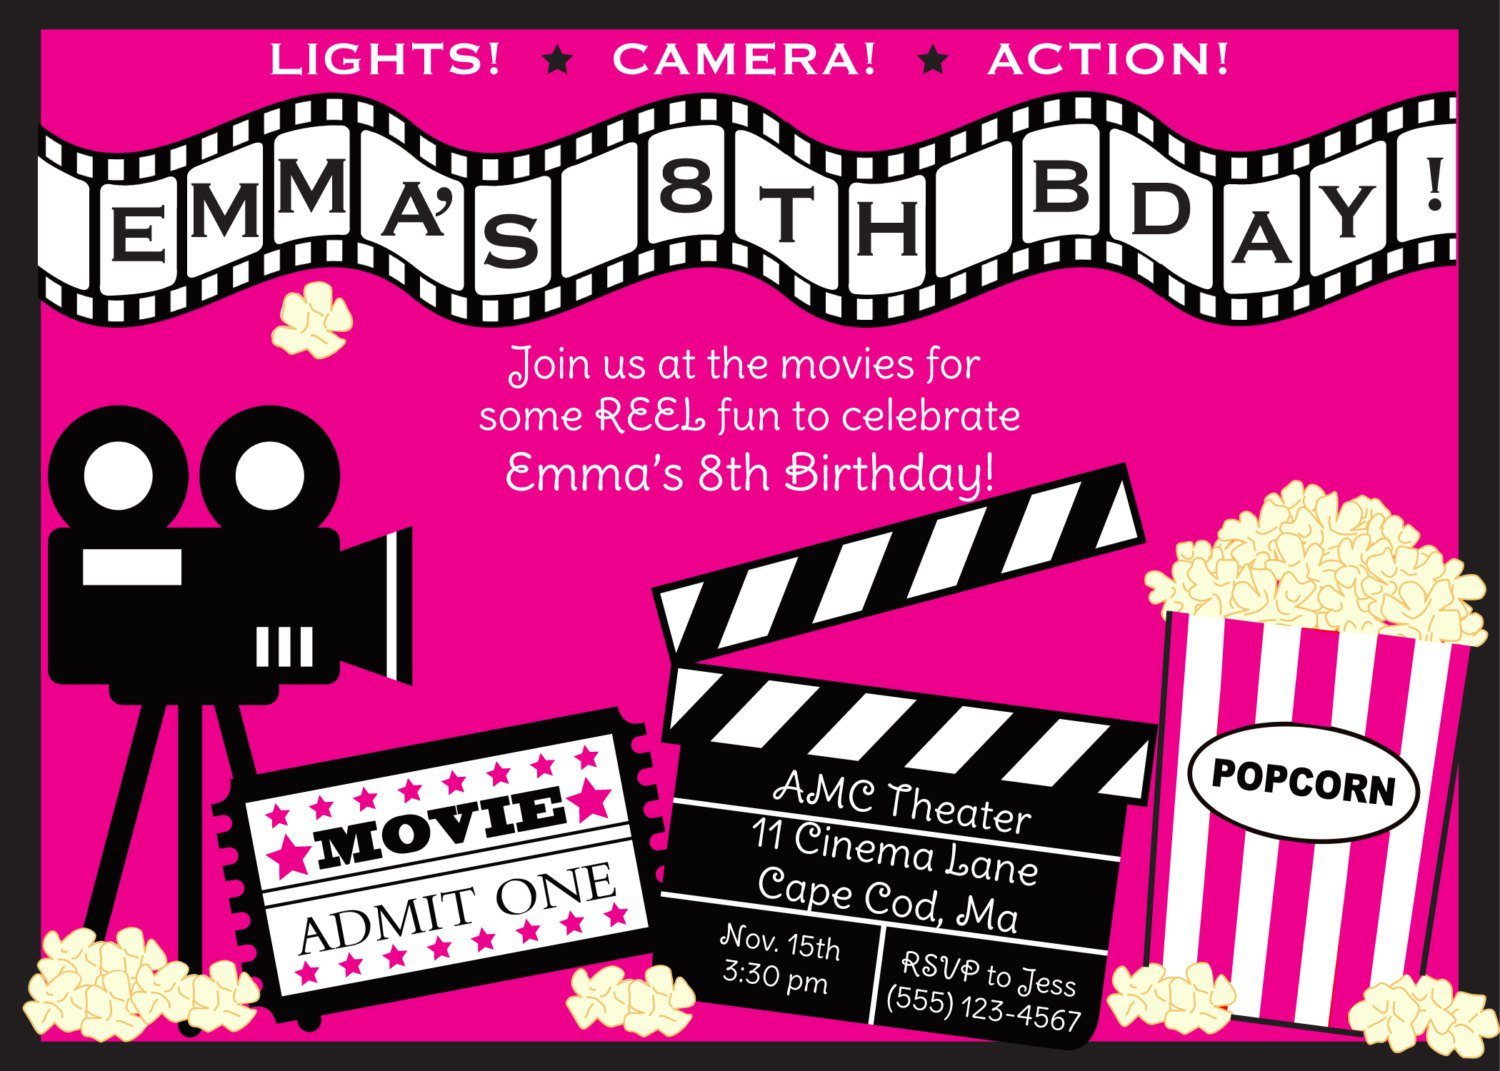 Movie Theater Invitations Templates Free